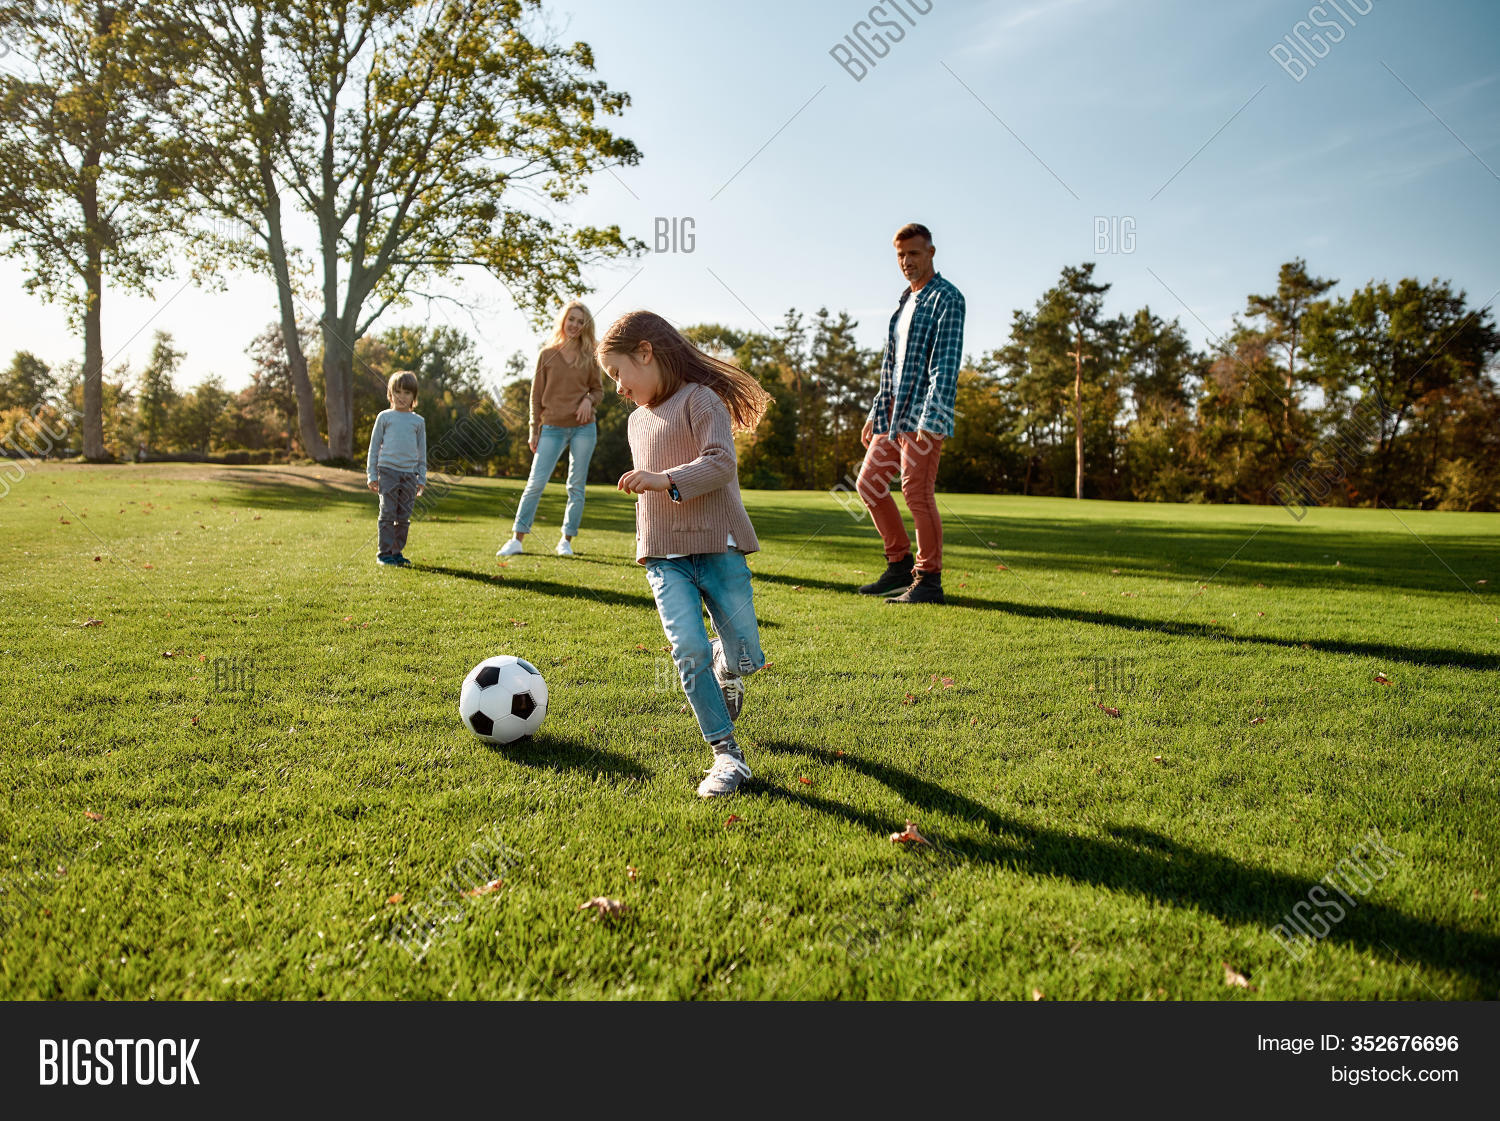 Portrait Of Cheerful Little Girl Playing Football With Her Family In The Park On A Sunny Day. They A